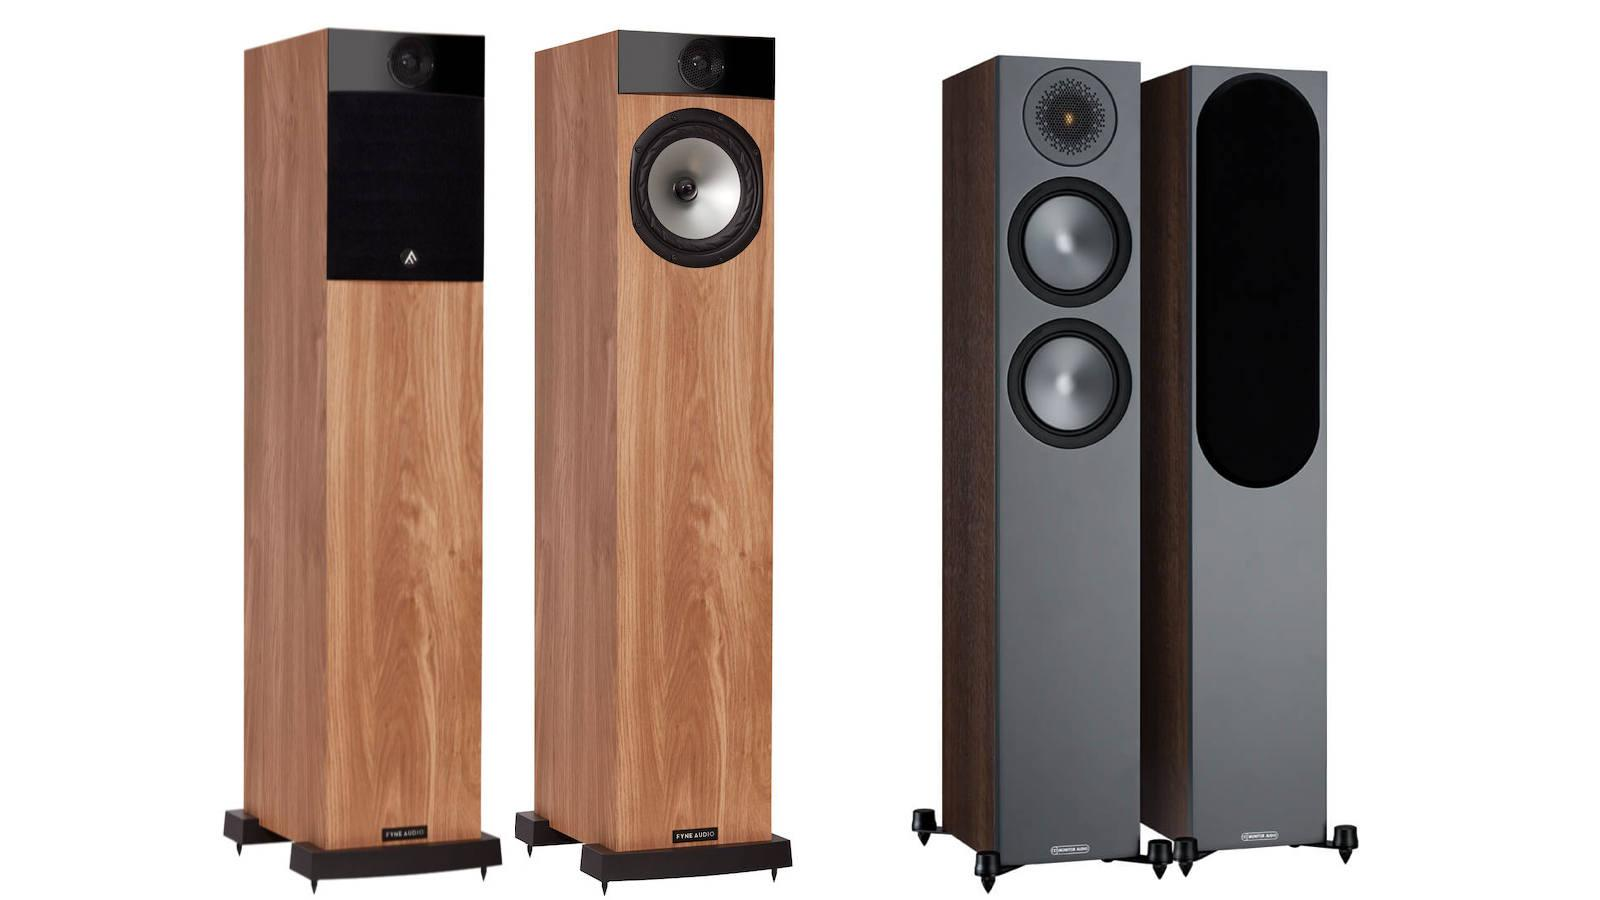 Fyne Audio F302 vs. Monitor Audio Bronze 200 Loudspeakers